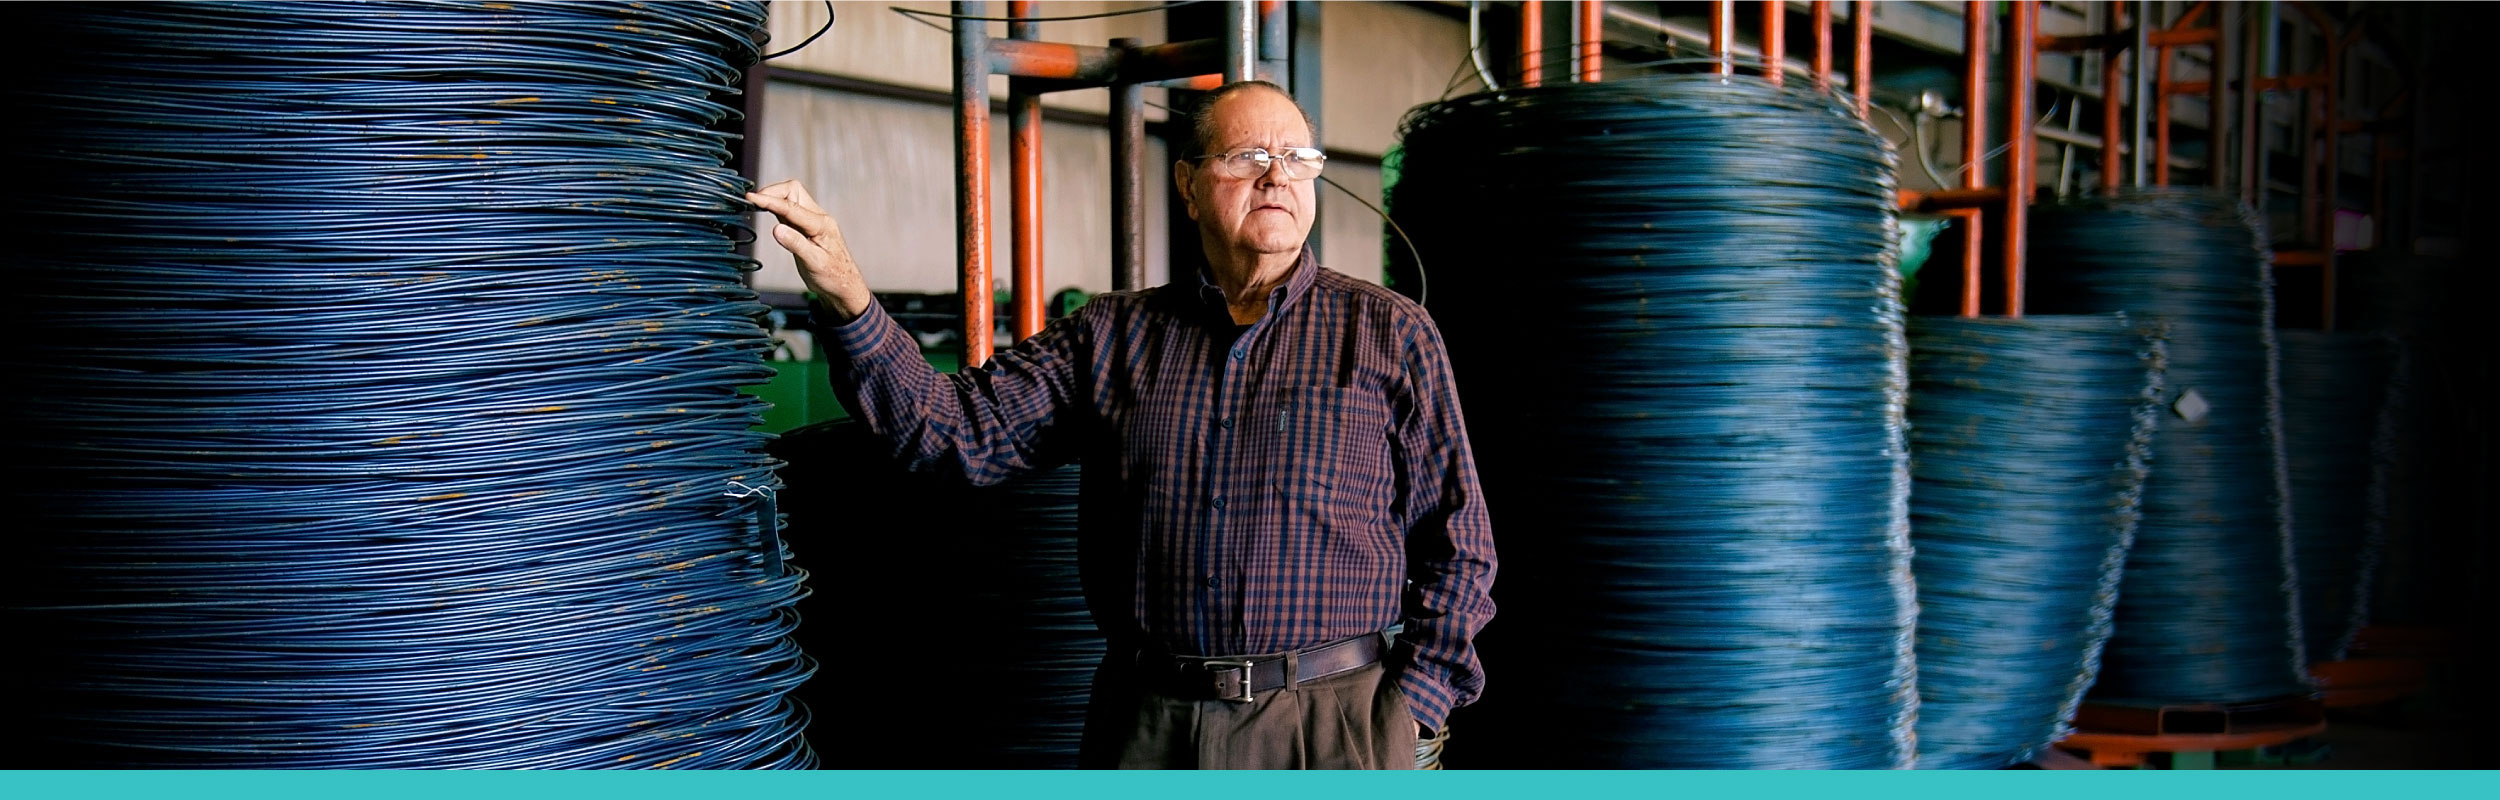 Man standing next to wire coils